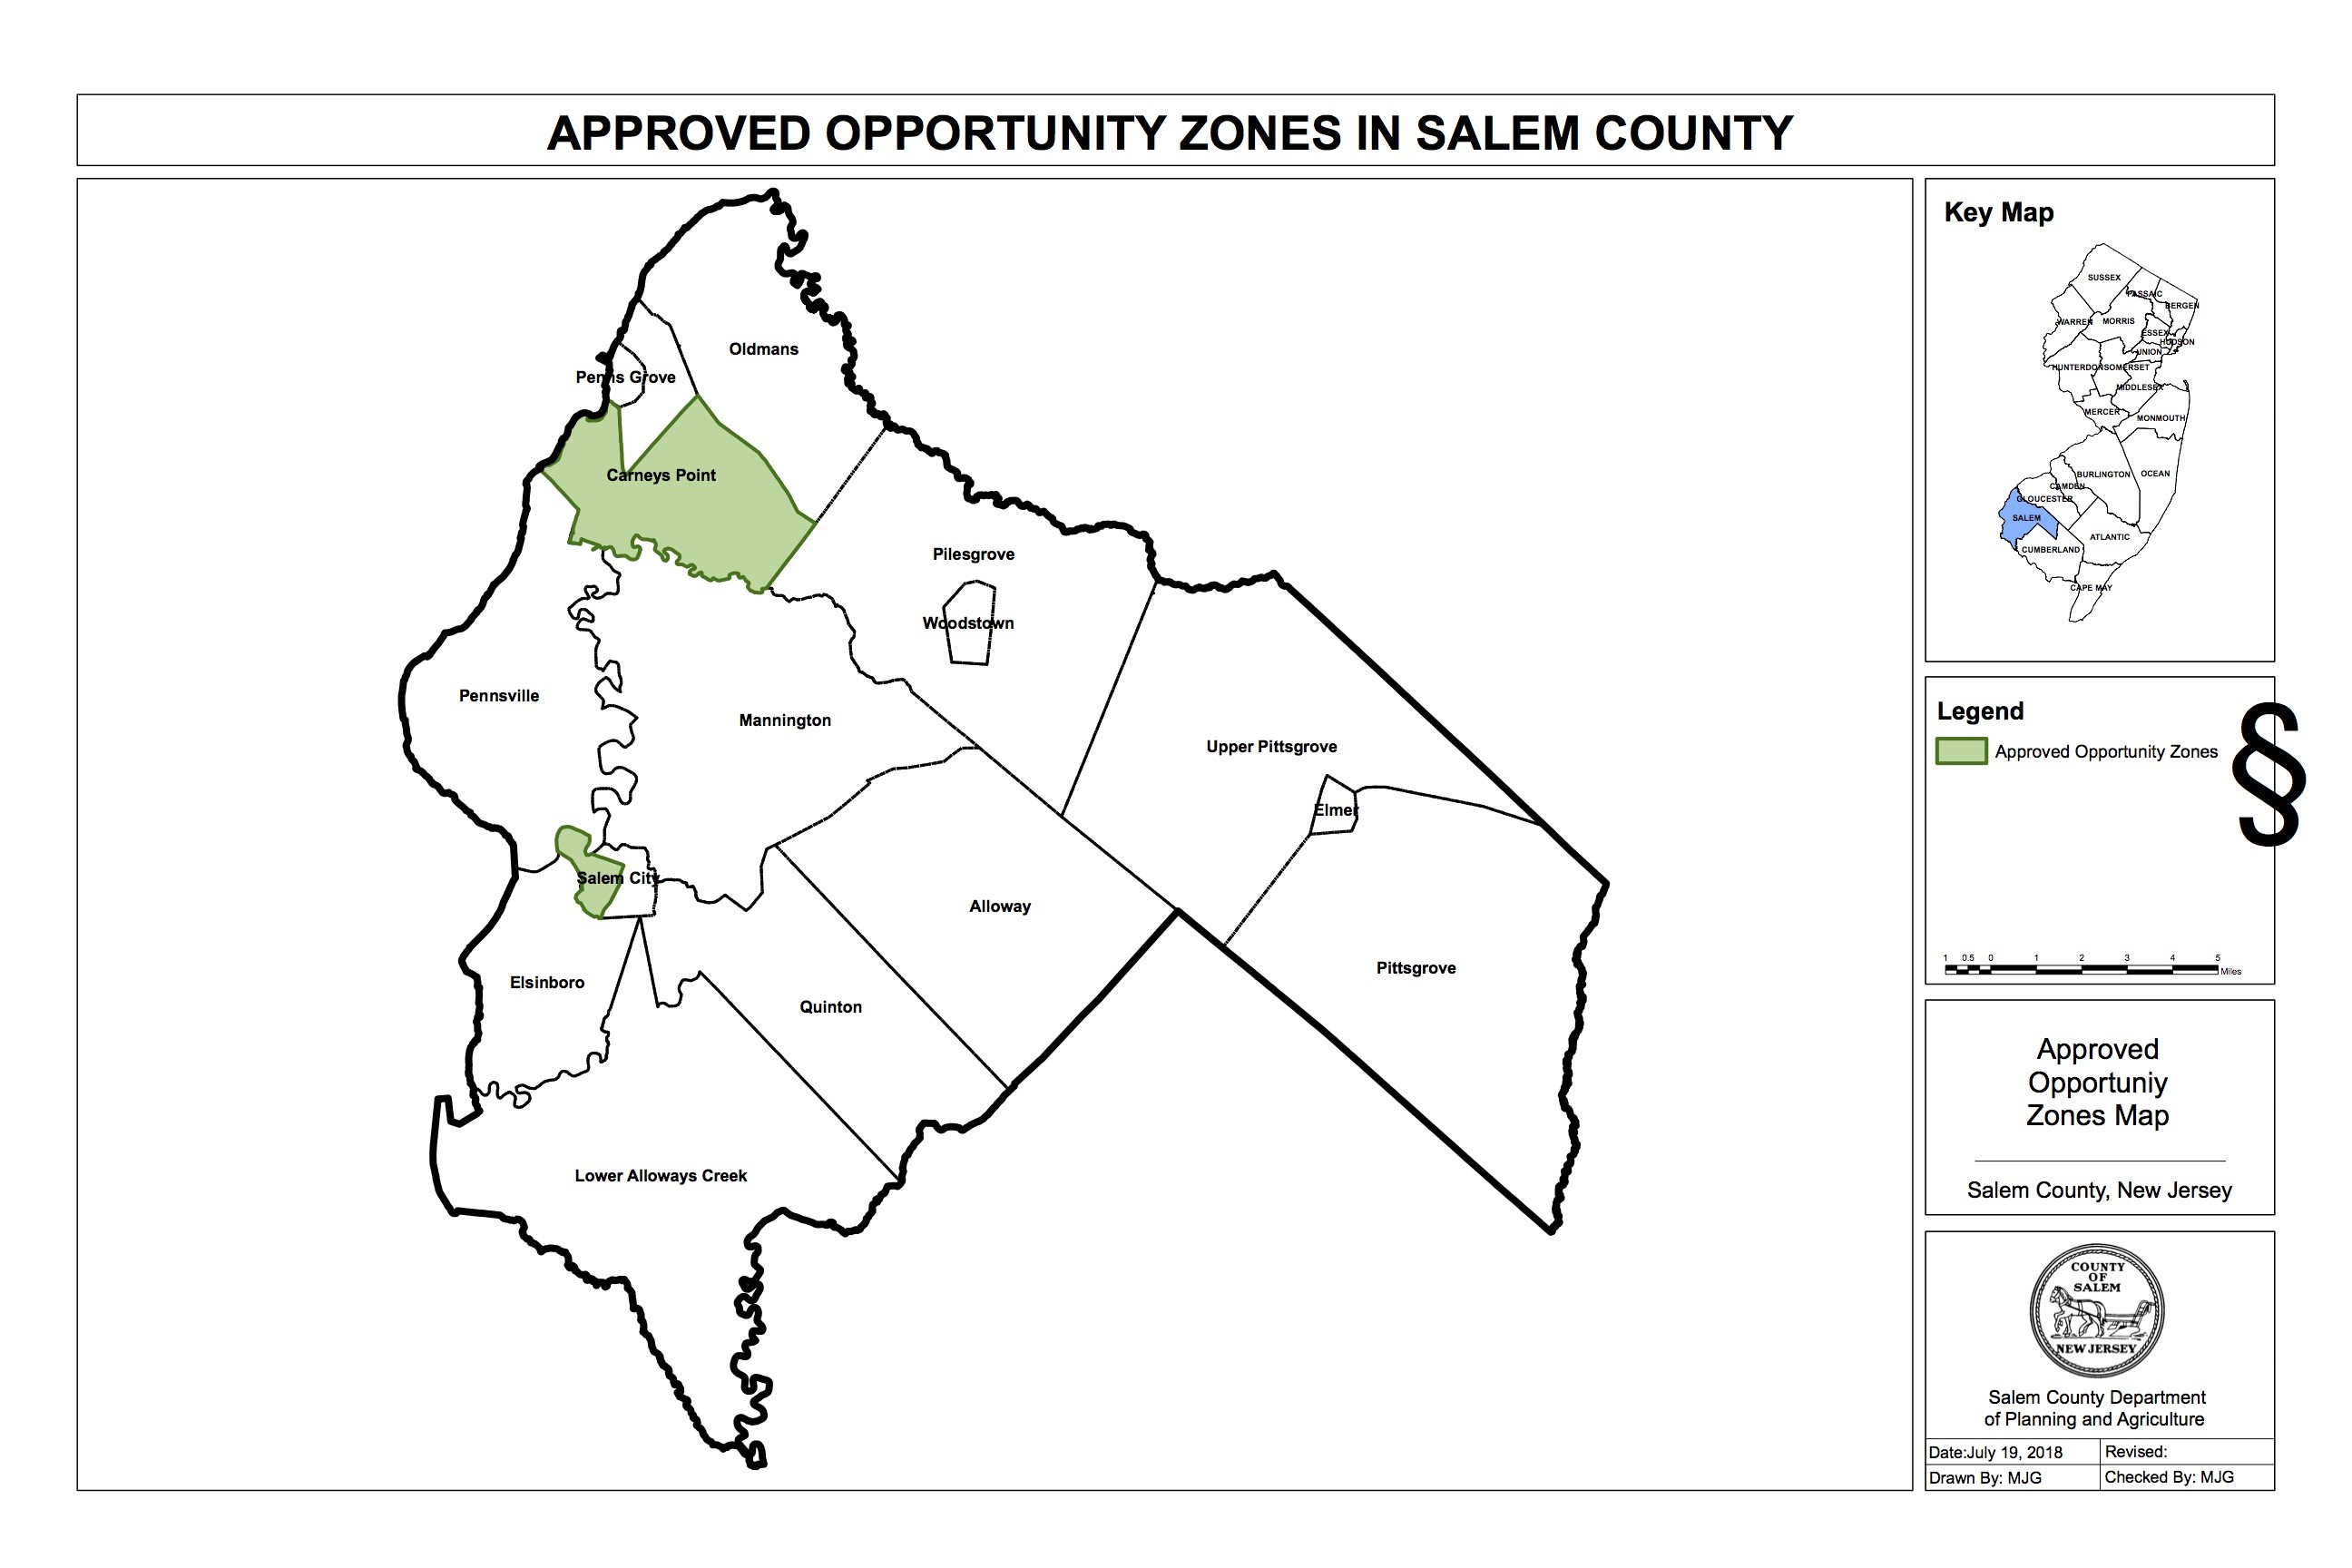 Approved opportunity zones map